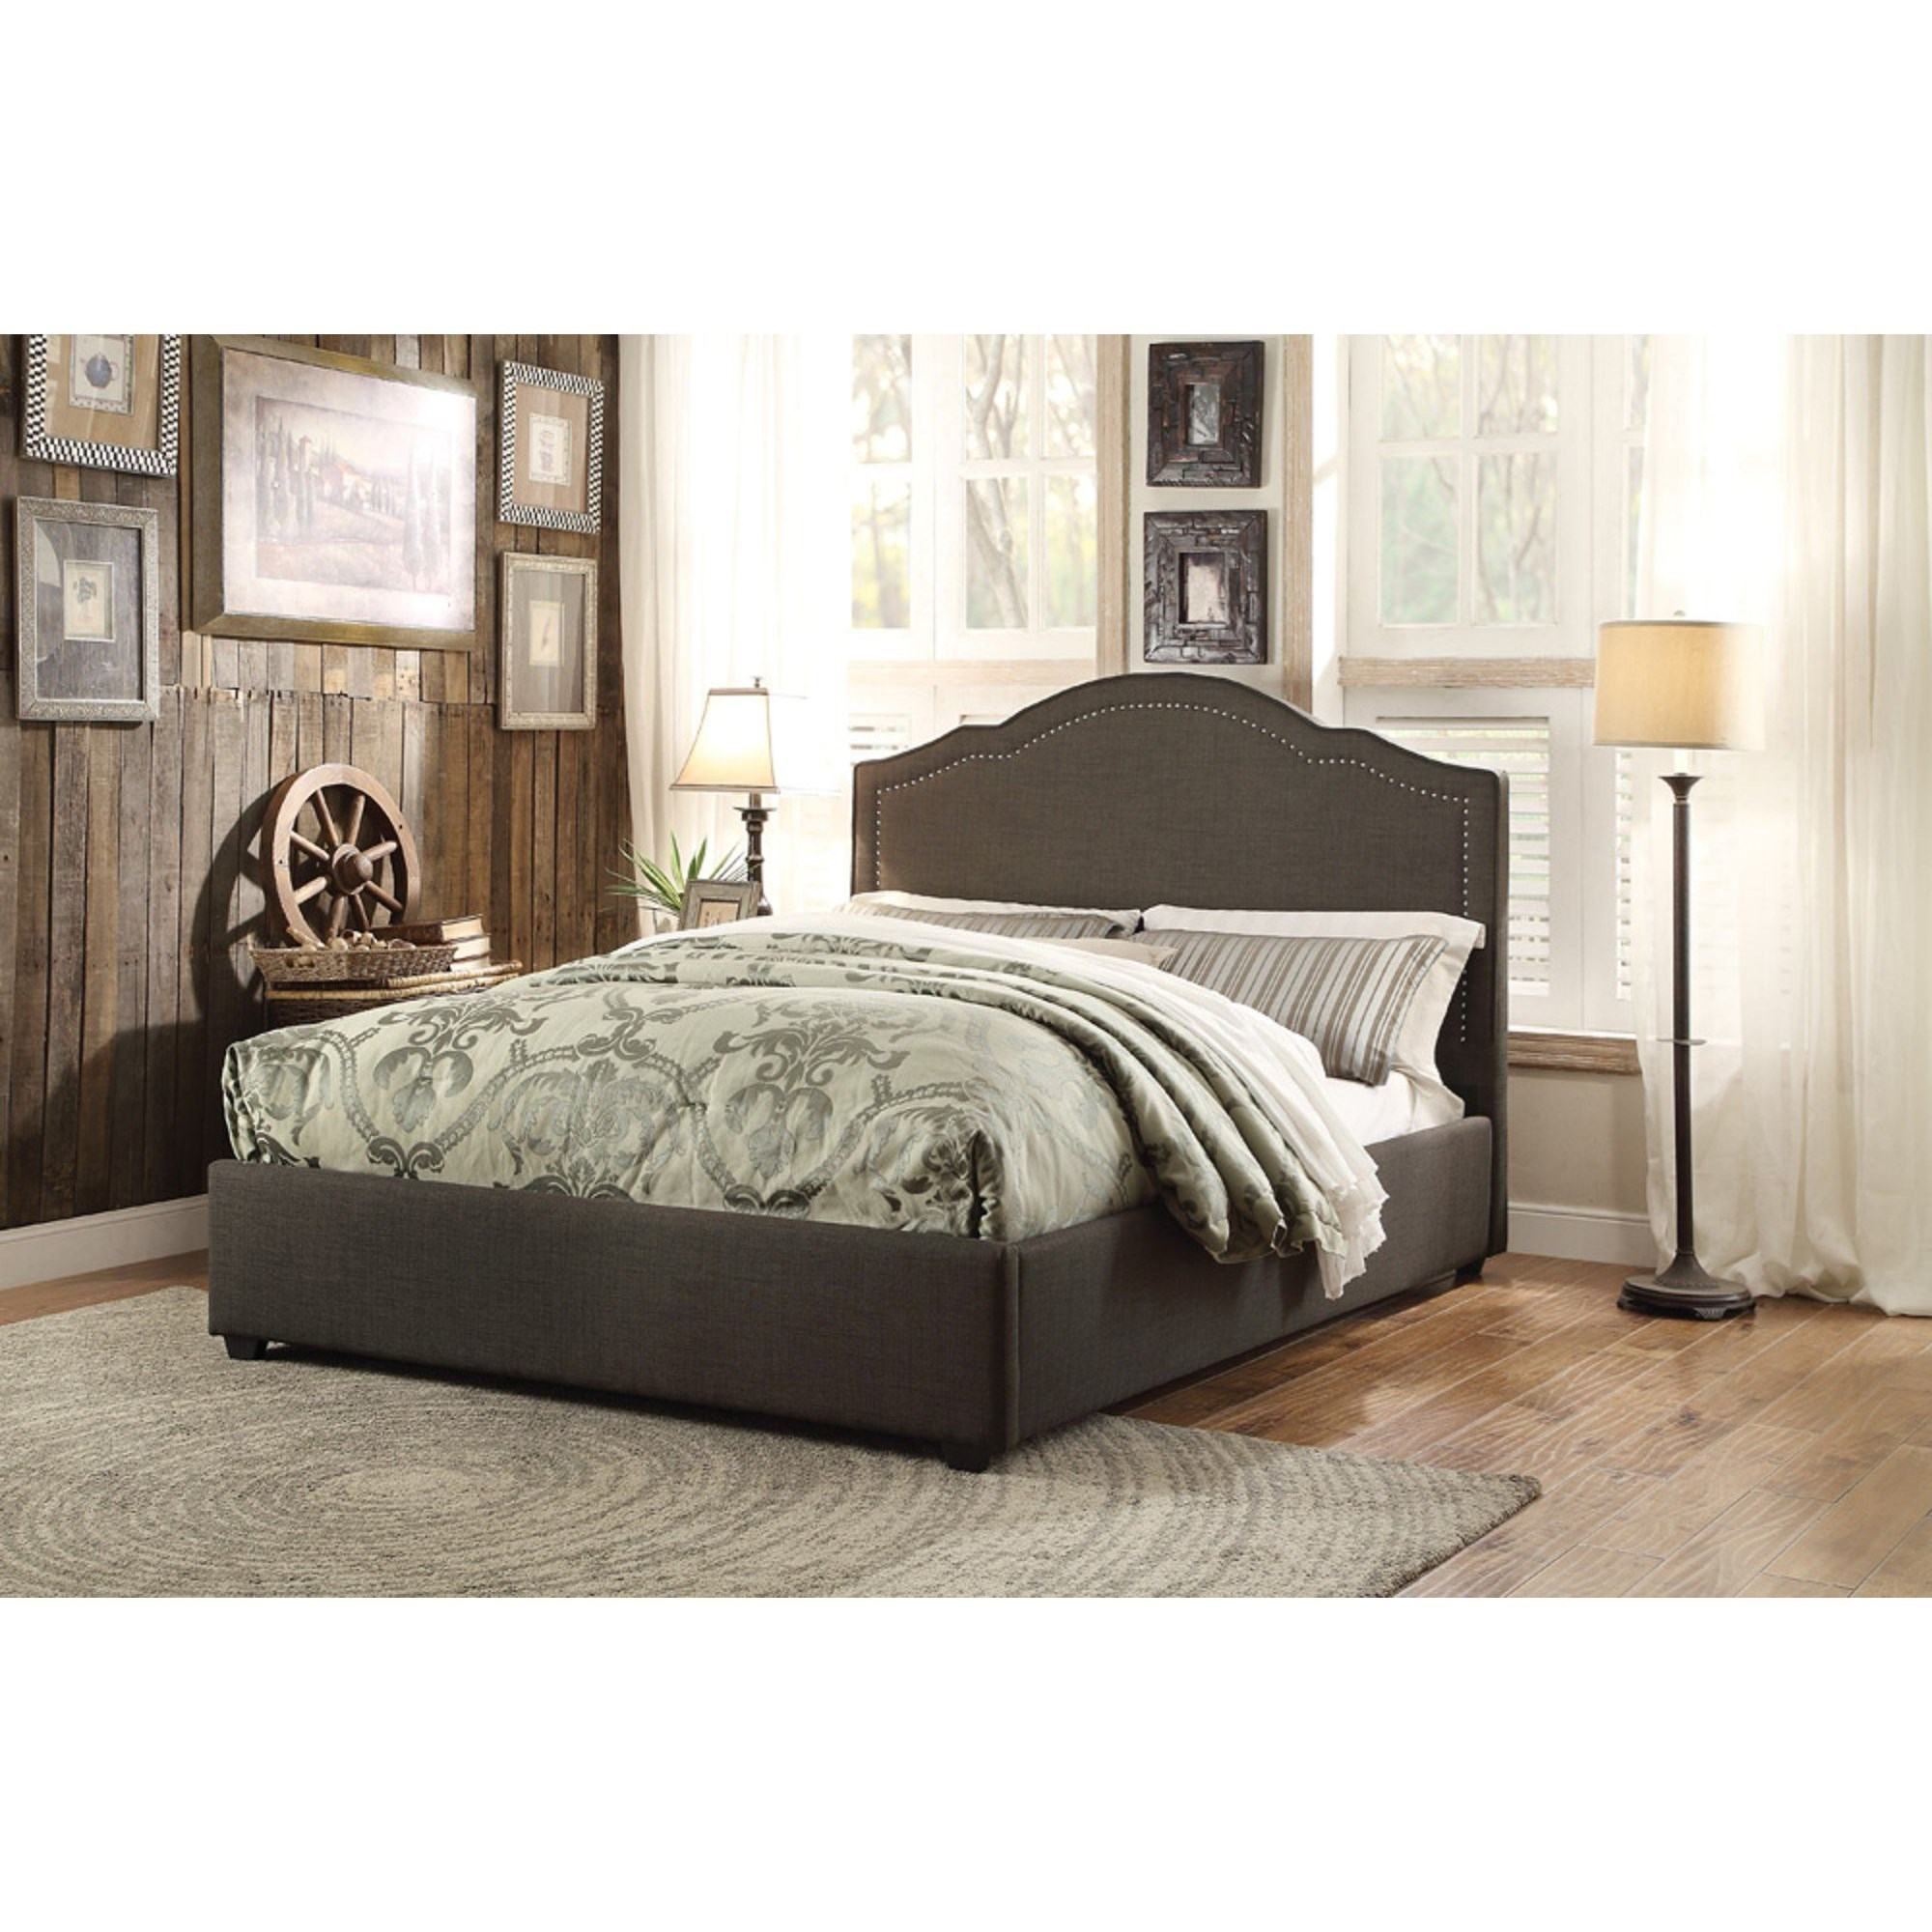 Zaira Queen Upholstered Bed by Homelegance at Carolina Direct